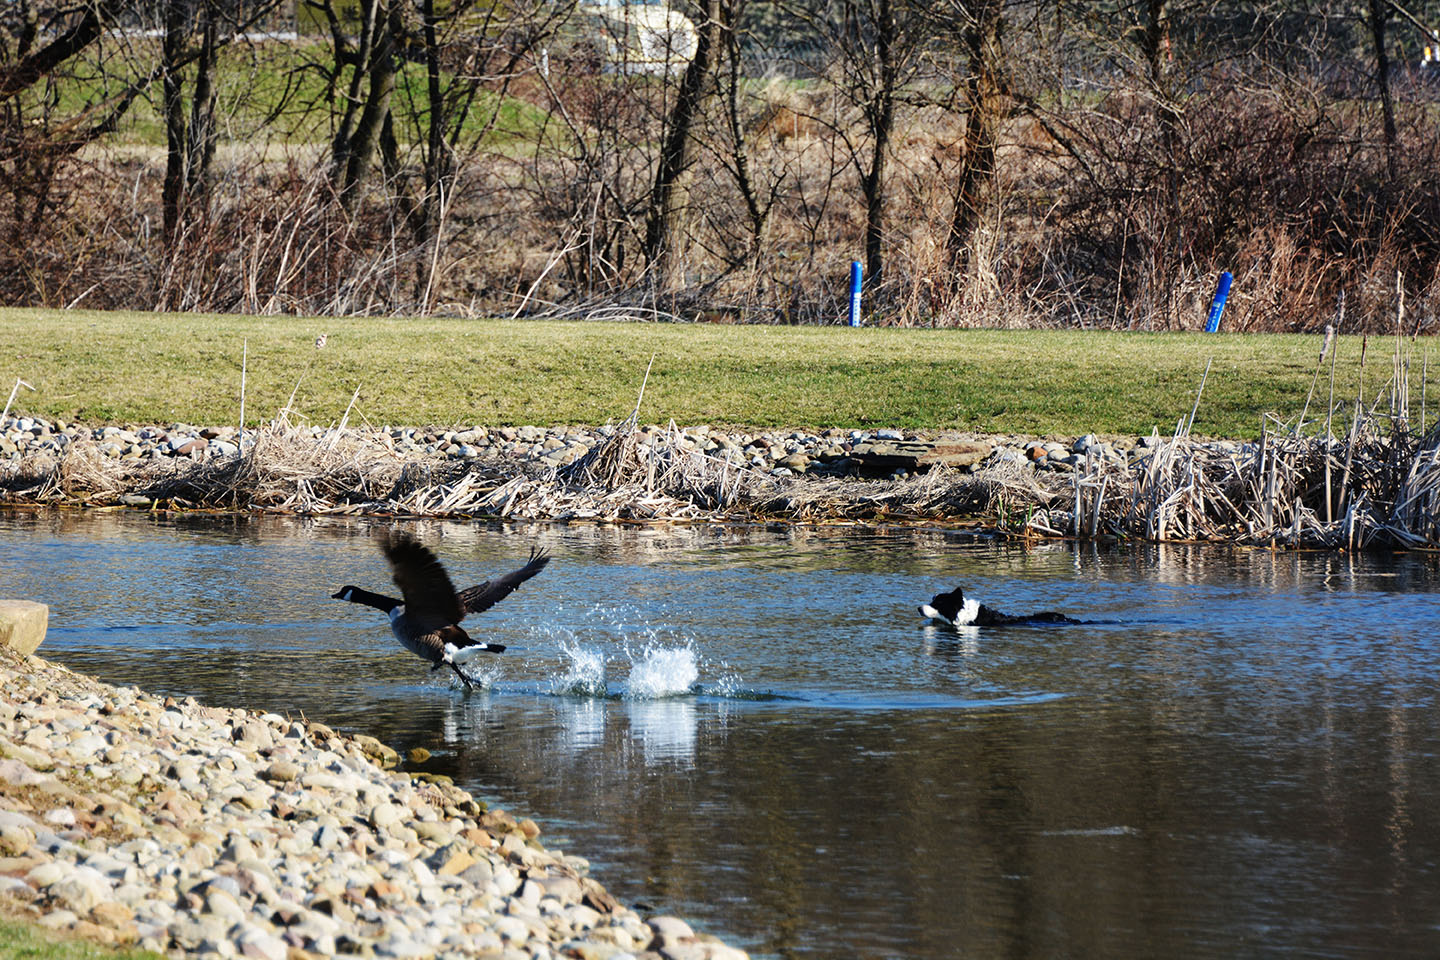 Geese Police of Western Pennsylvania PA boarder collie in action chasing problem canada geese